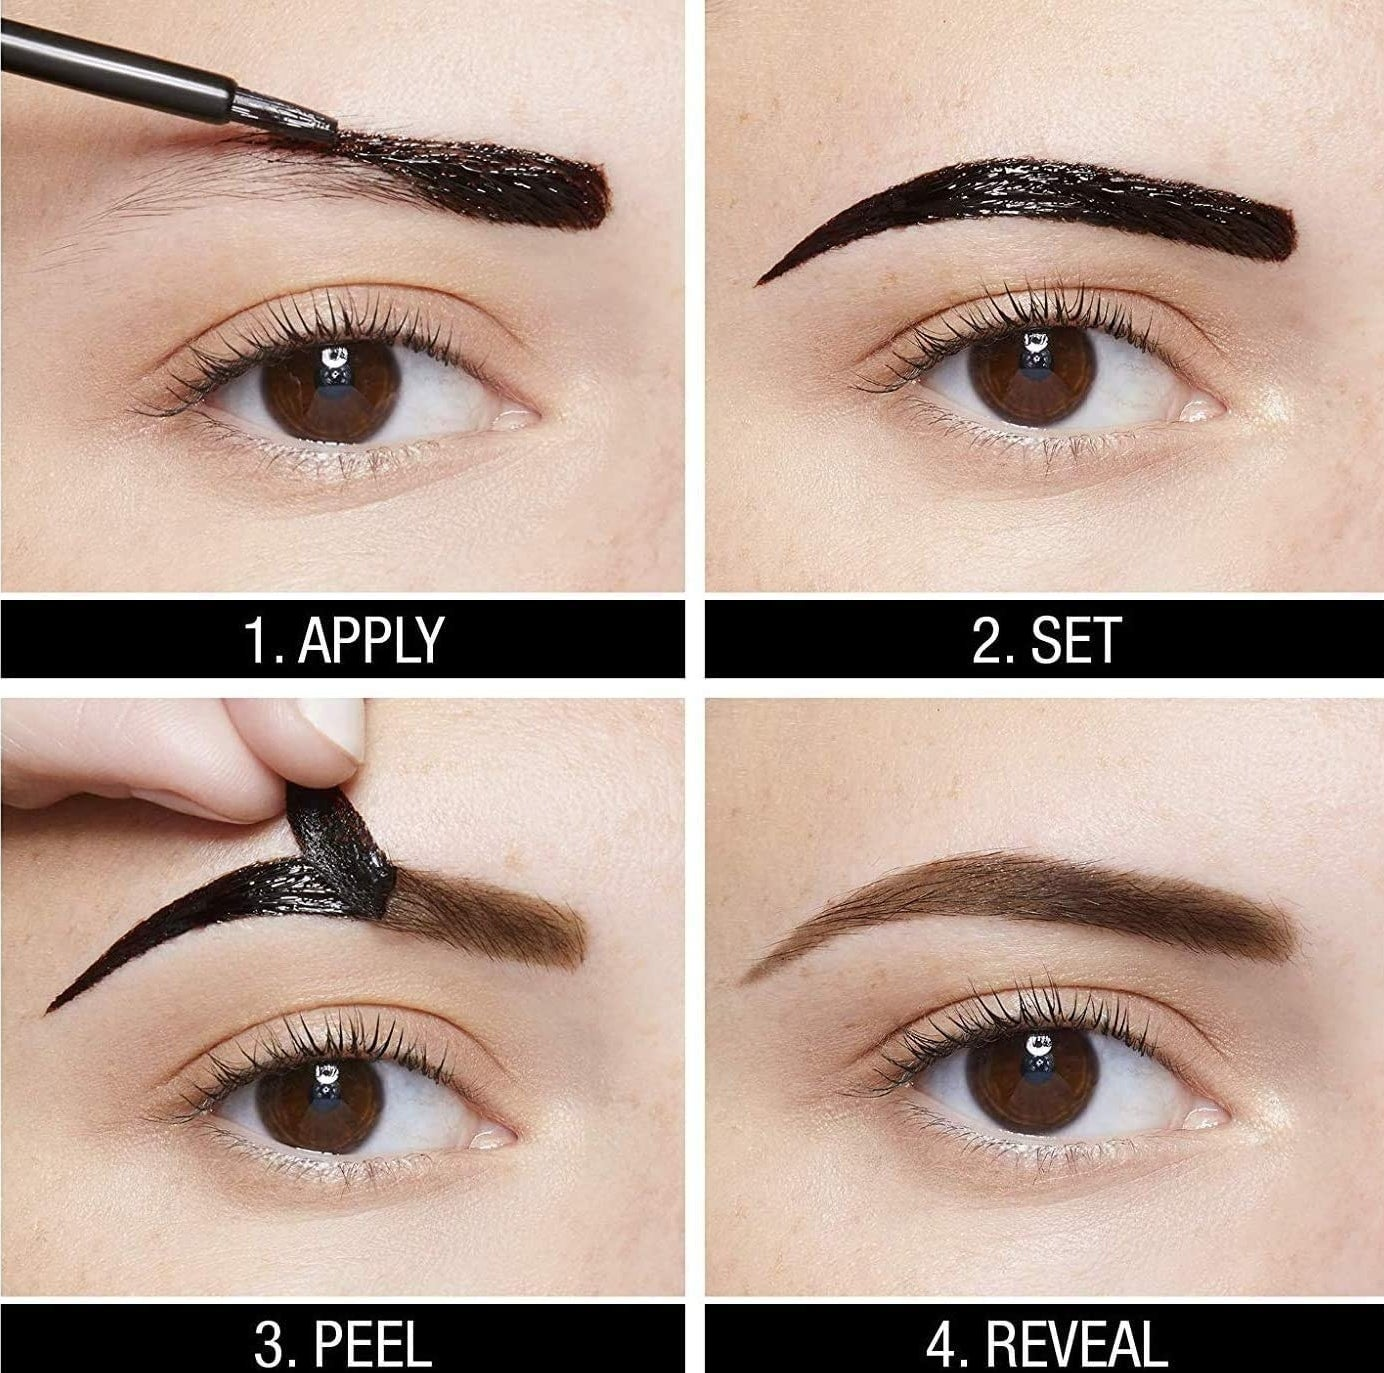 the four steps for using the brow tattoo, apply, set, peel, and reveal